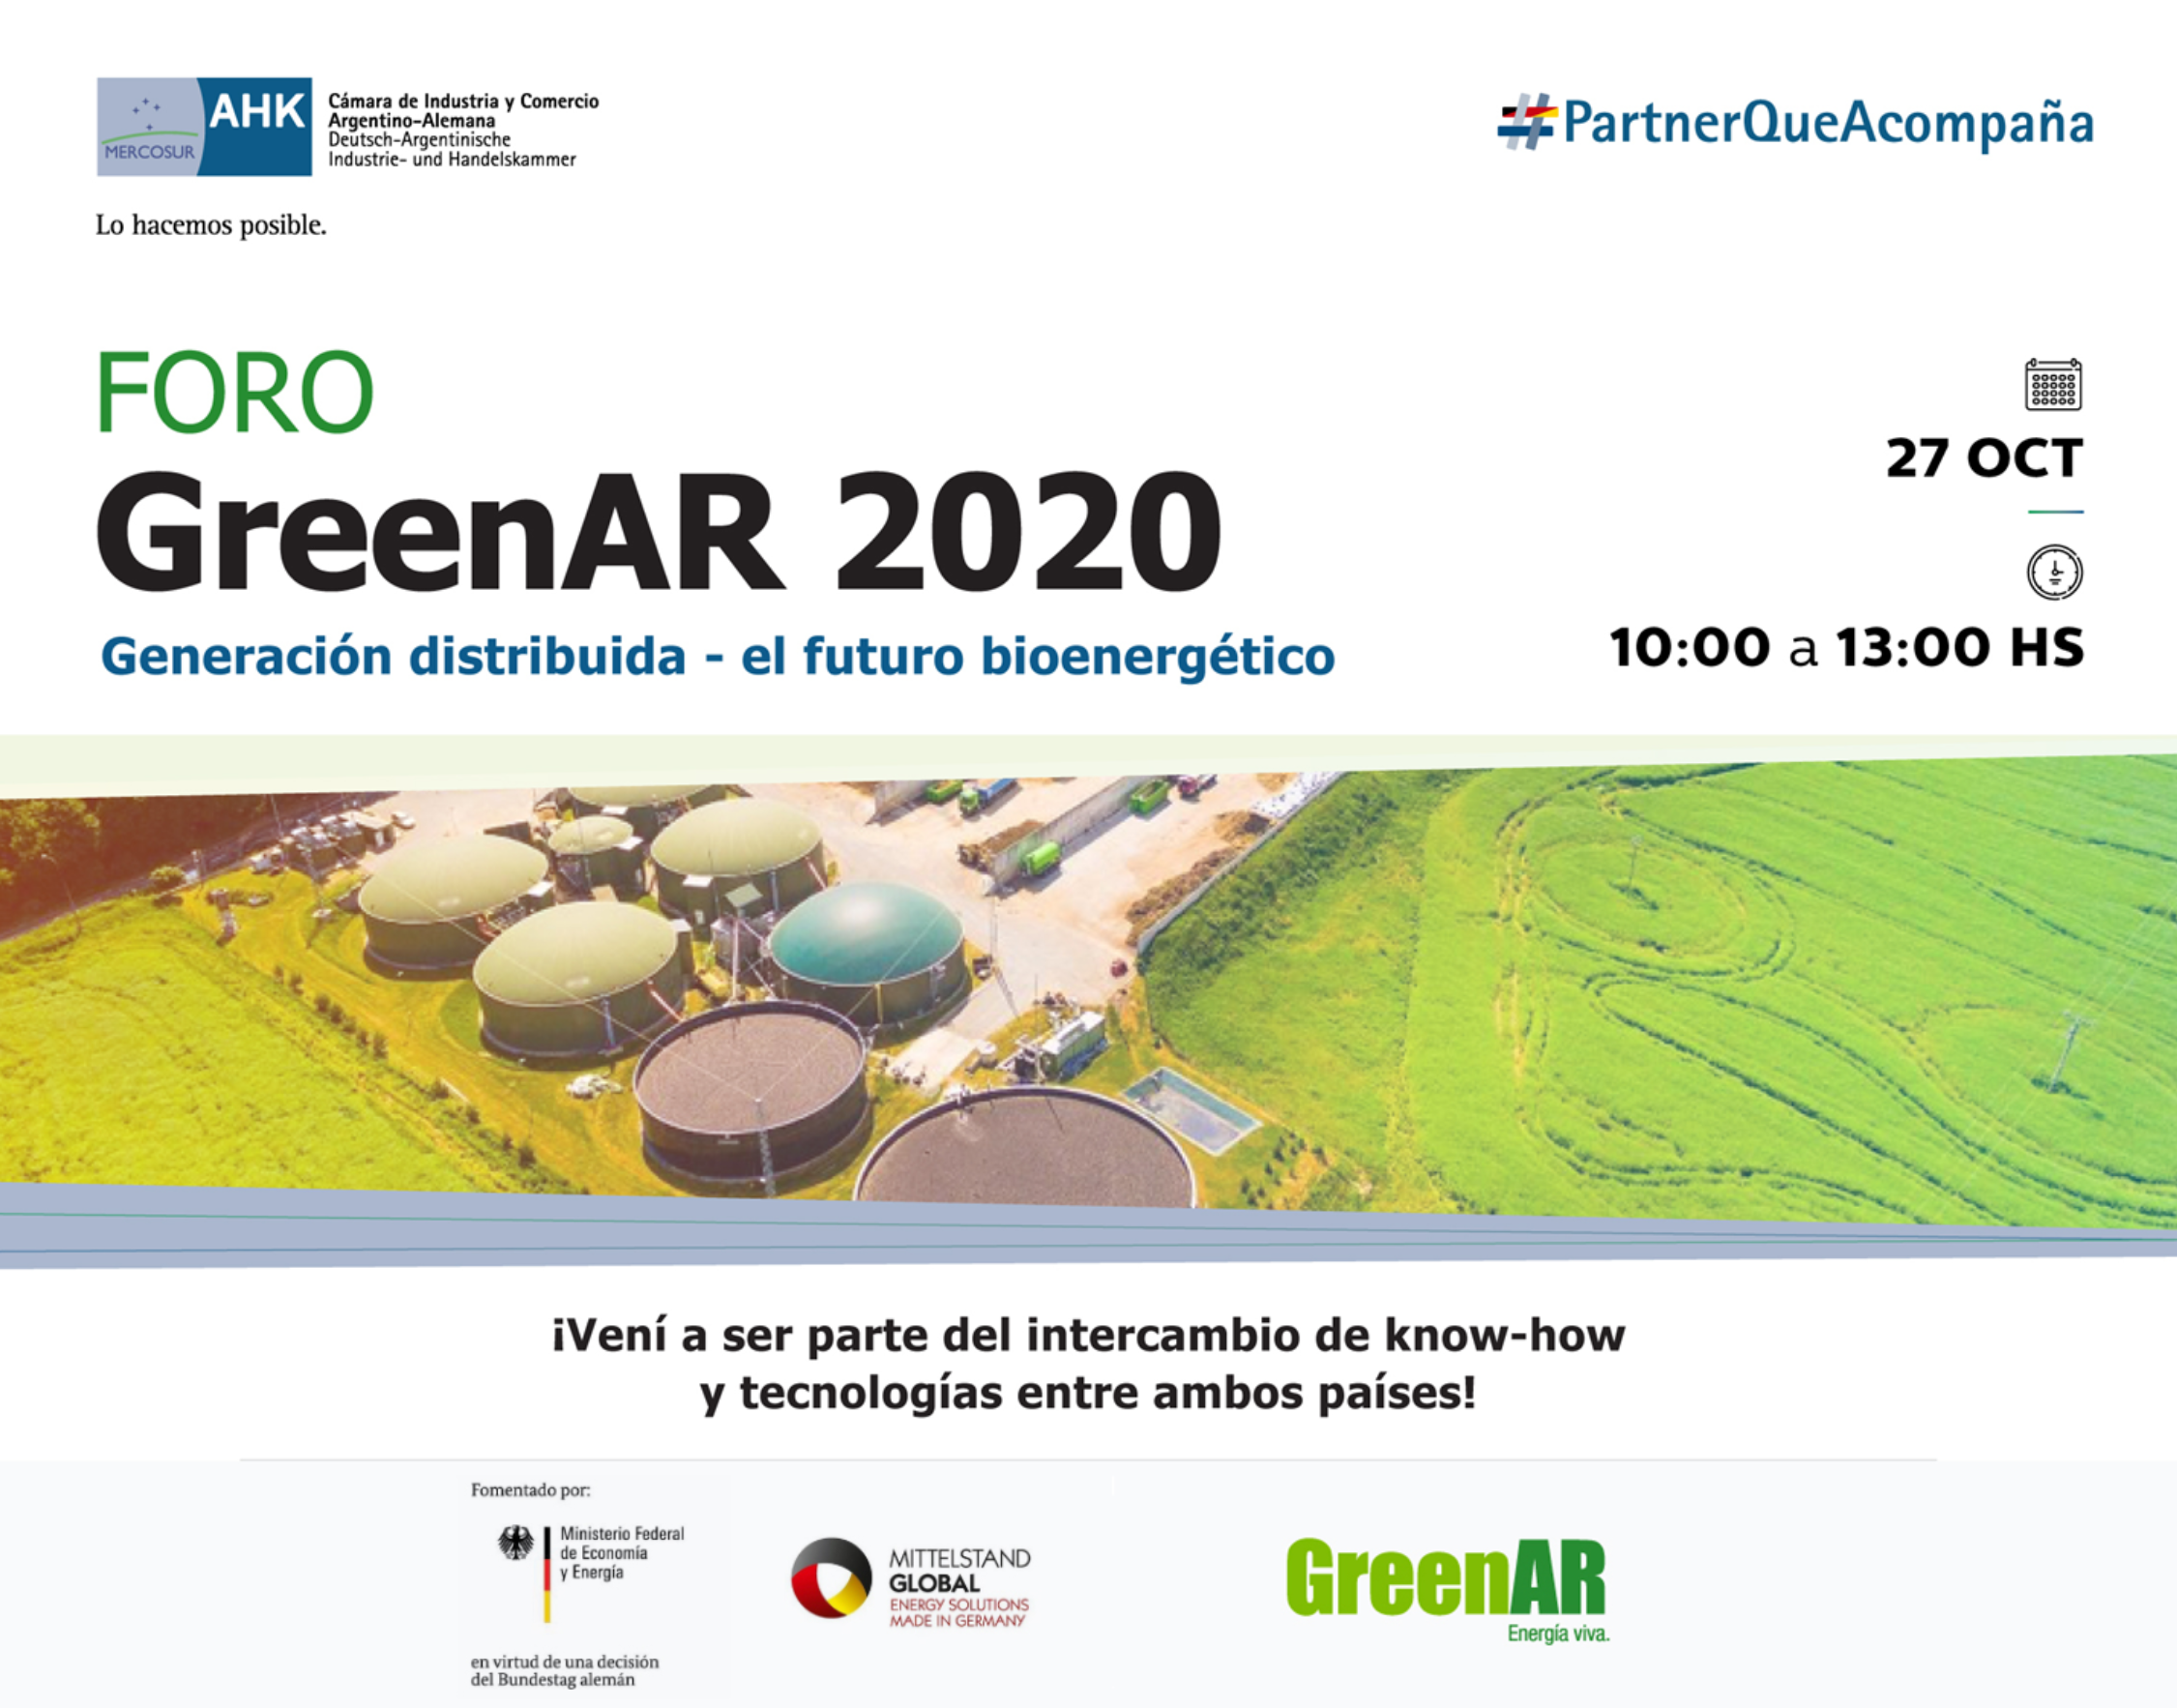 AULA GLOBAL | Foro GreenAr 2020